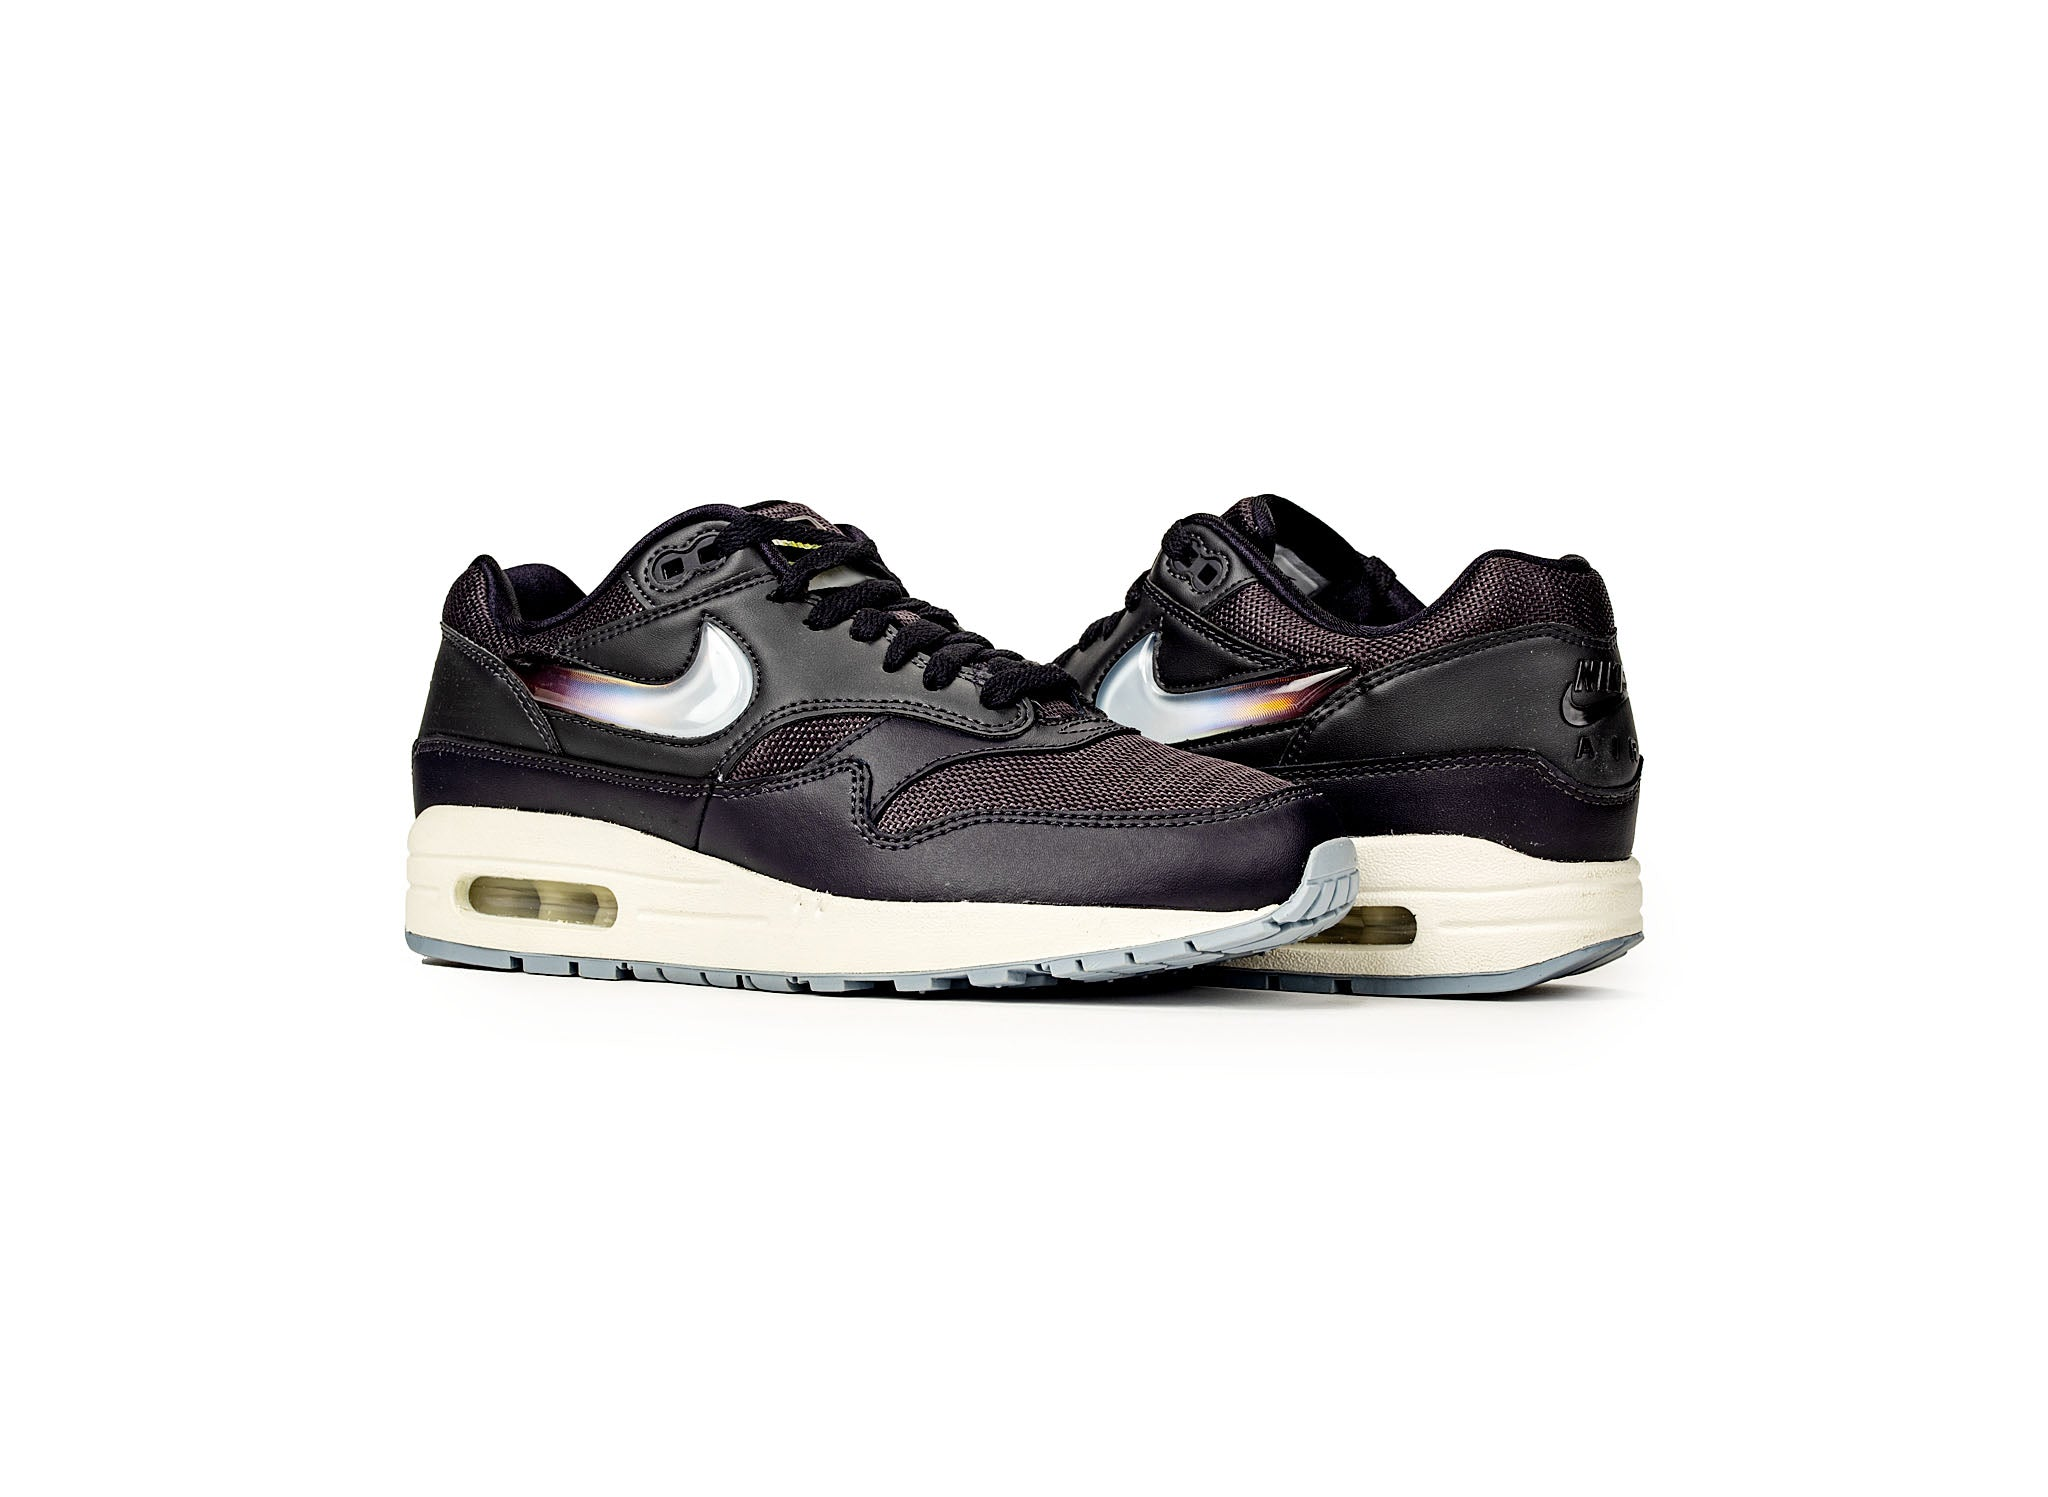 NIKE WOMENS AIR MAX 1 JP - Oneness Boutique